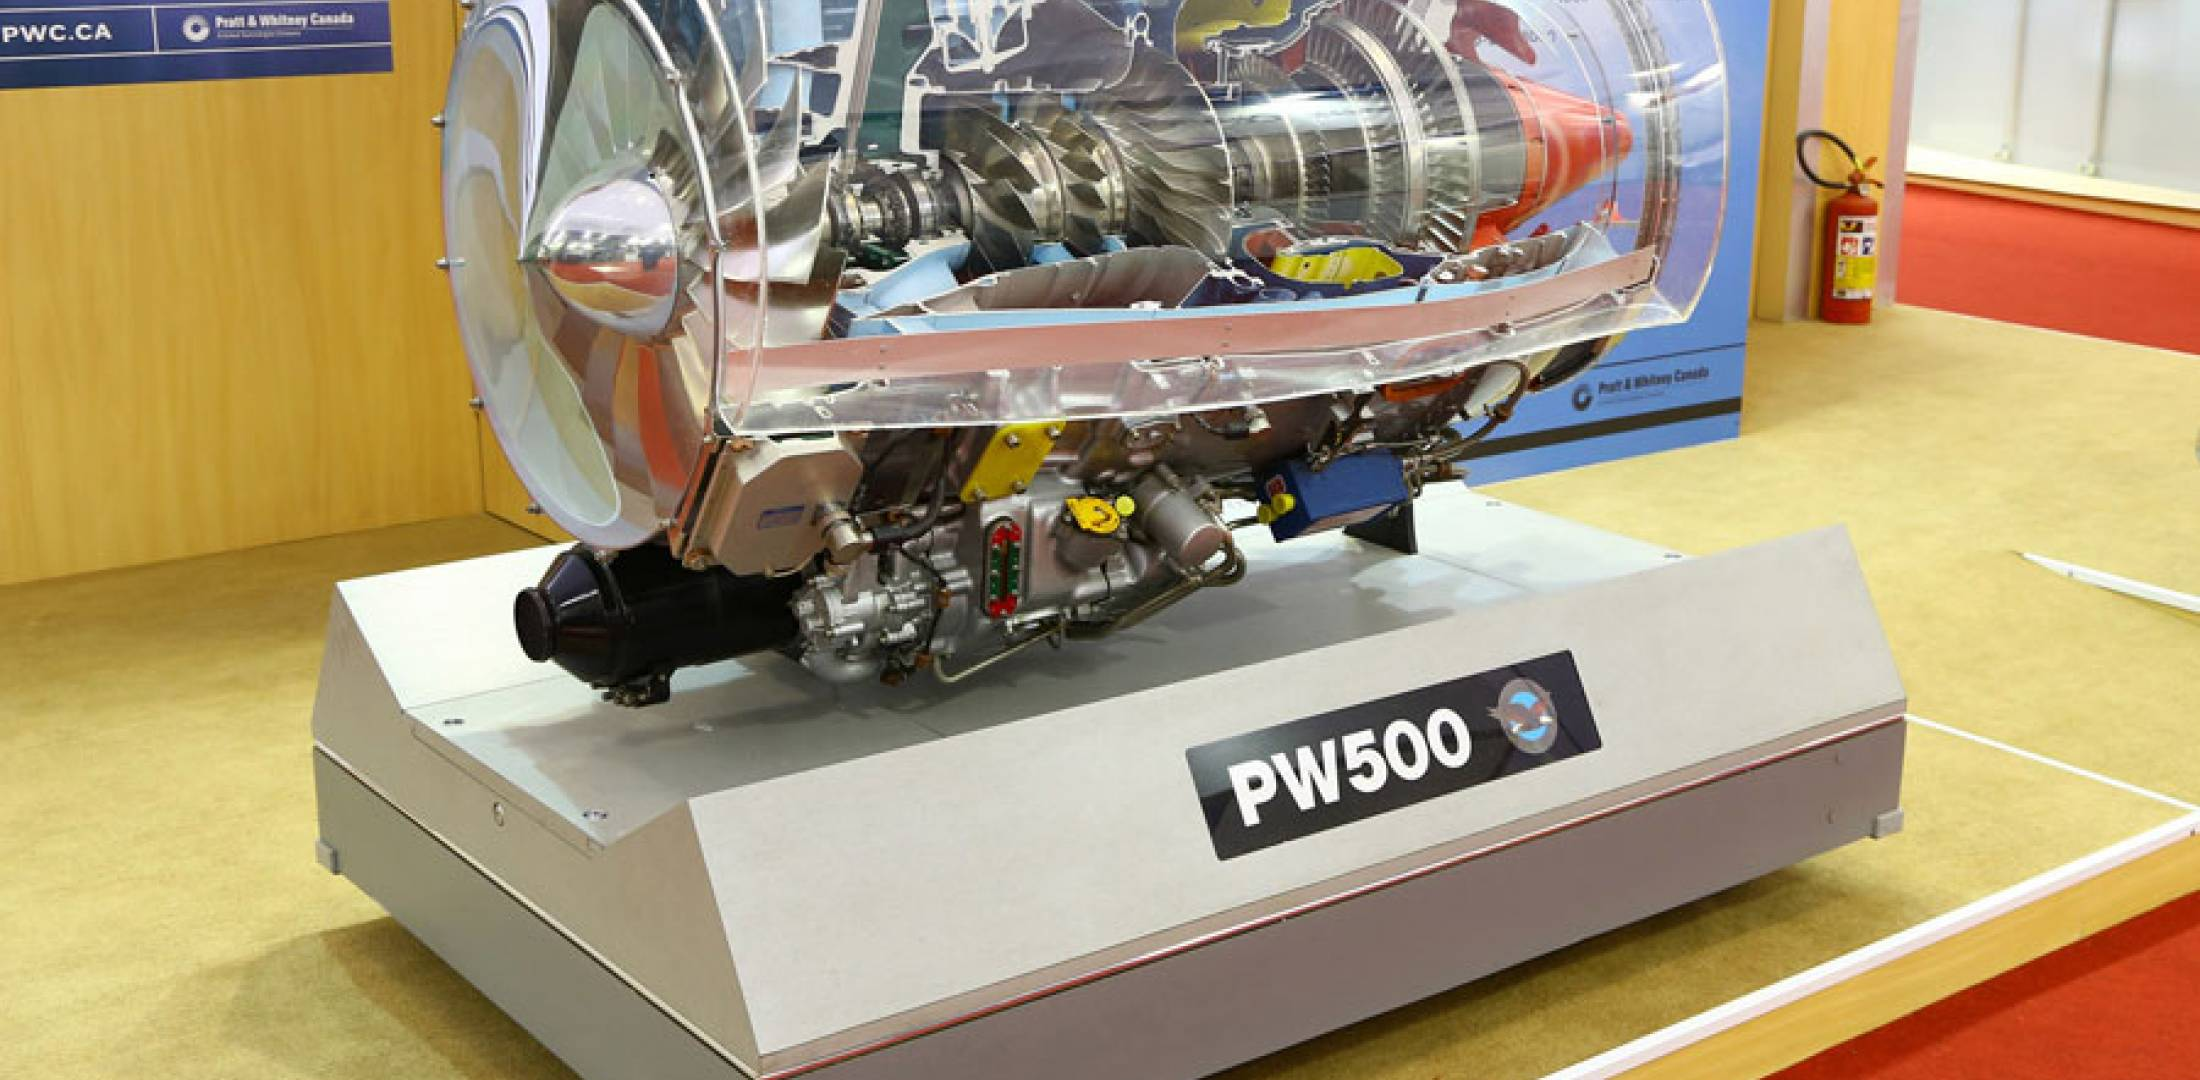 Pratt & Whitney PW500 engine